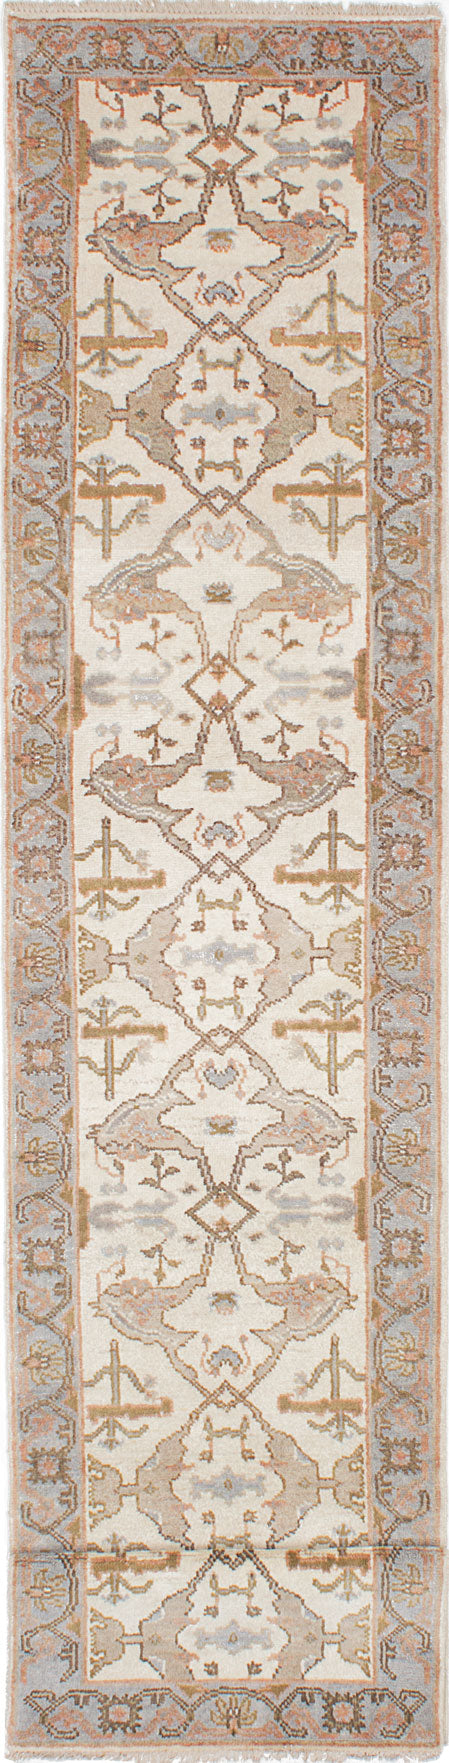 "Hand-knotted Indian Floral  Traditional Royal-Ushak Runner rug  Cream, Grey 2'9 x 13'10"" """